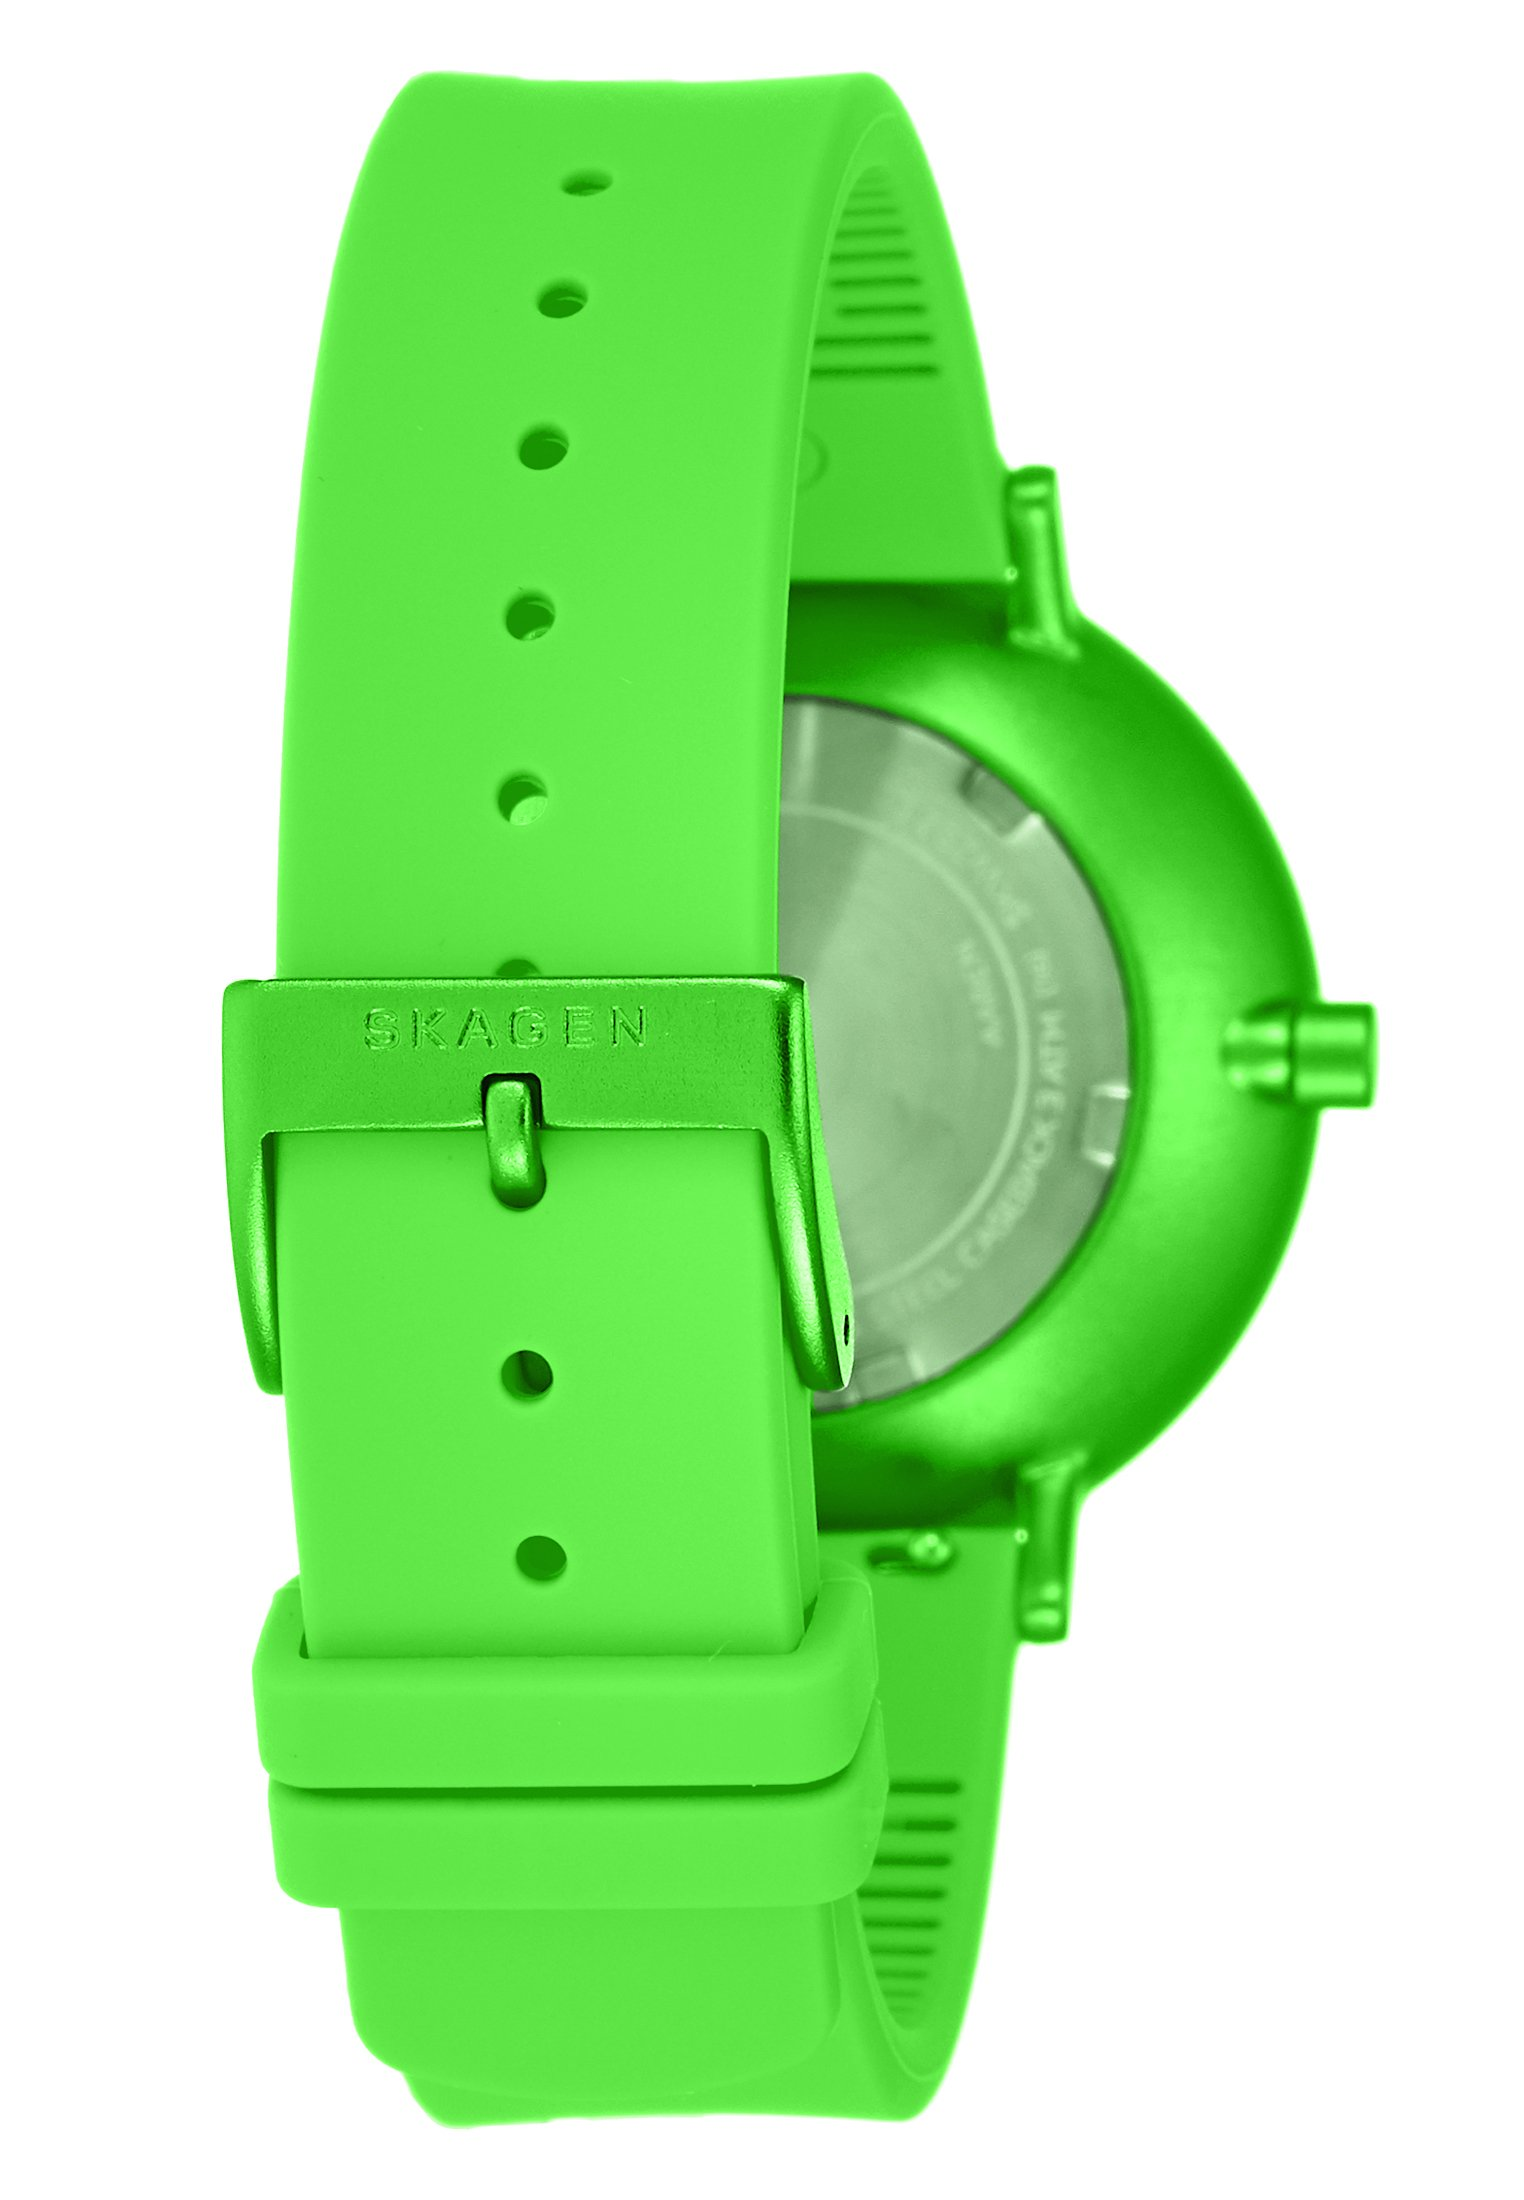 AarenMontre Skagen Green Skagen AarenMontre AarenMontre Skagen Green Skagen Green Skagen AarenMontre Green AarenMontre trhQCdBsxo